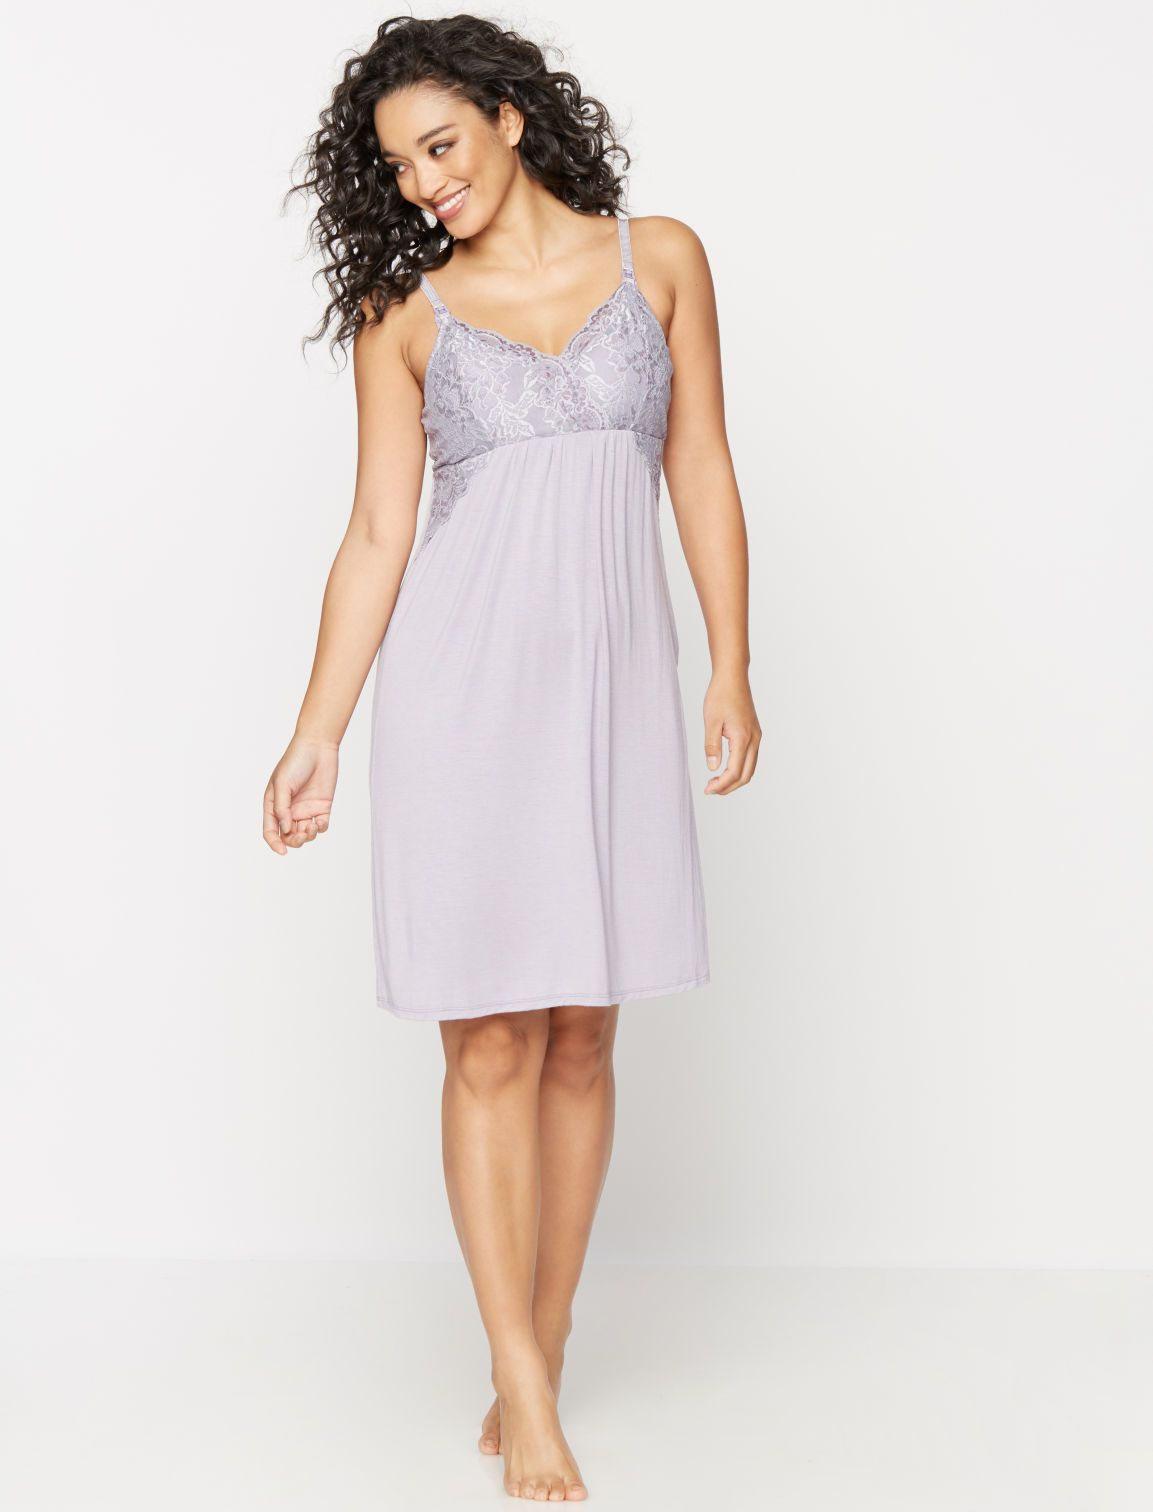 ef0df03812062 Doze in style | Lace trim nursing nightgown by A Pea in the Pod ...